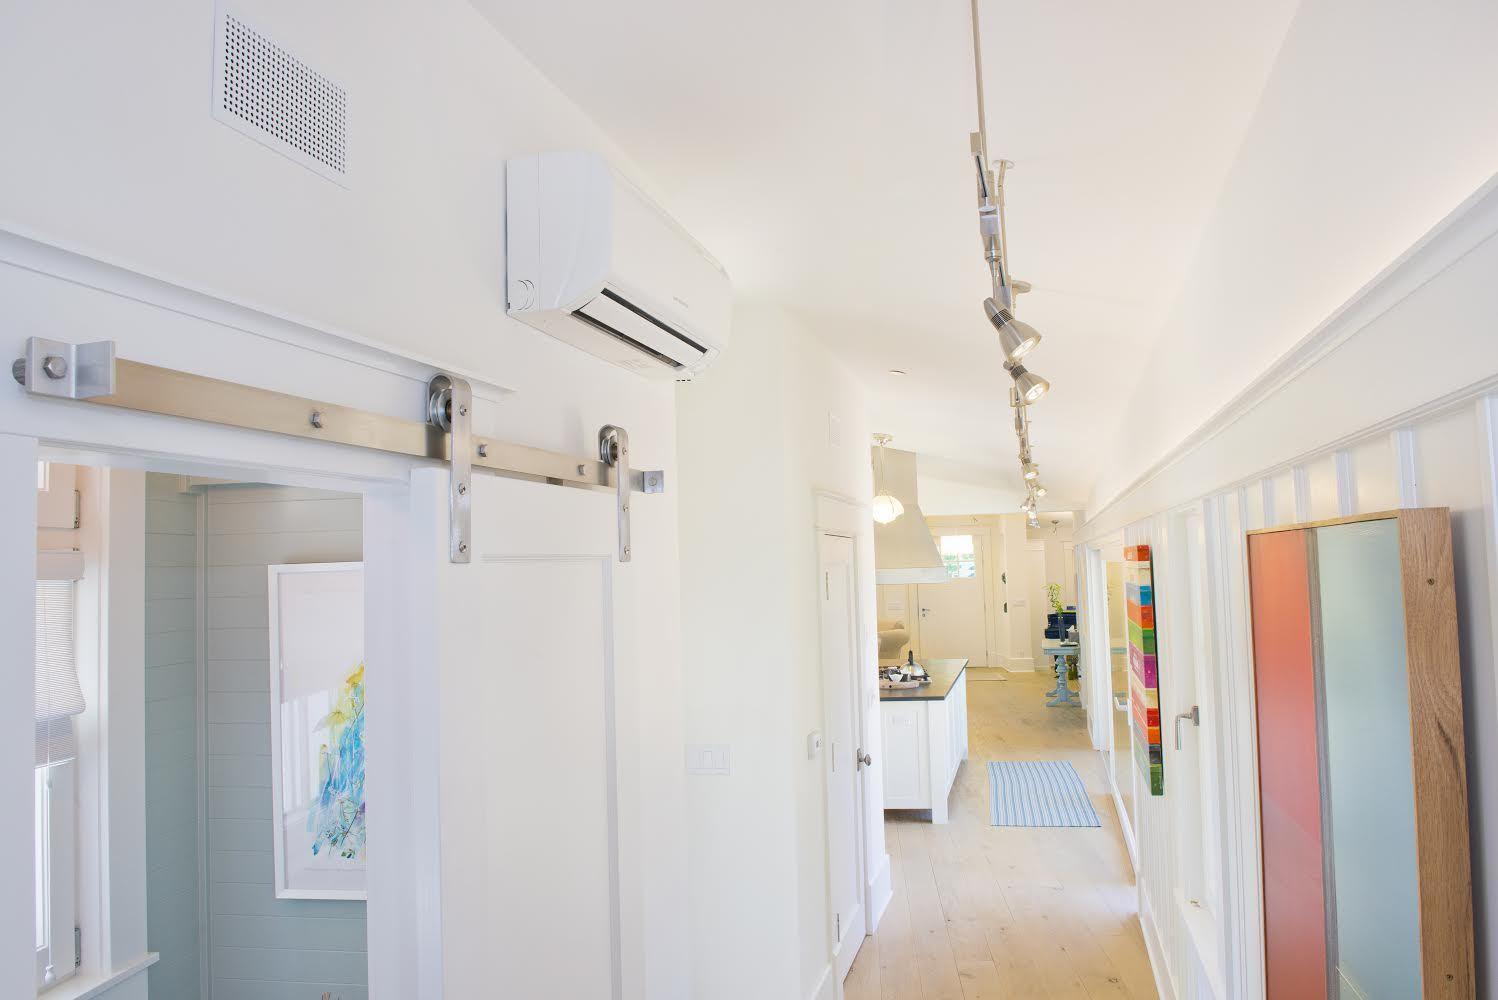 #875B44 Split System Air Conditioner With Installation  Brand New 8981 Air Conditioning Installation Newcastle images with 1498x1000 px on helpvideos.info - Air Conditioners, Air Coolers and more